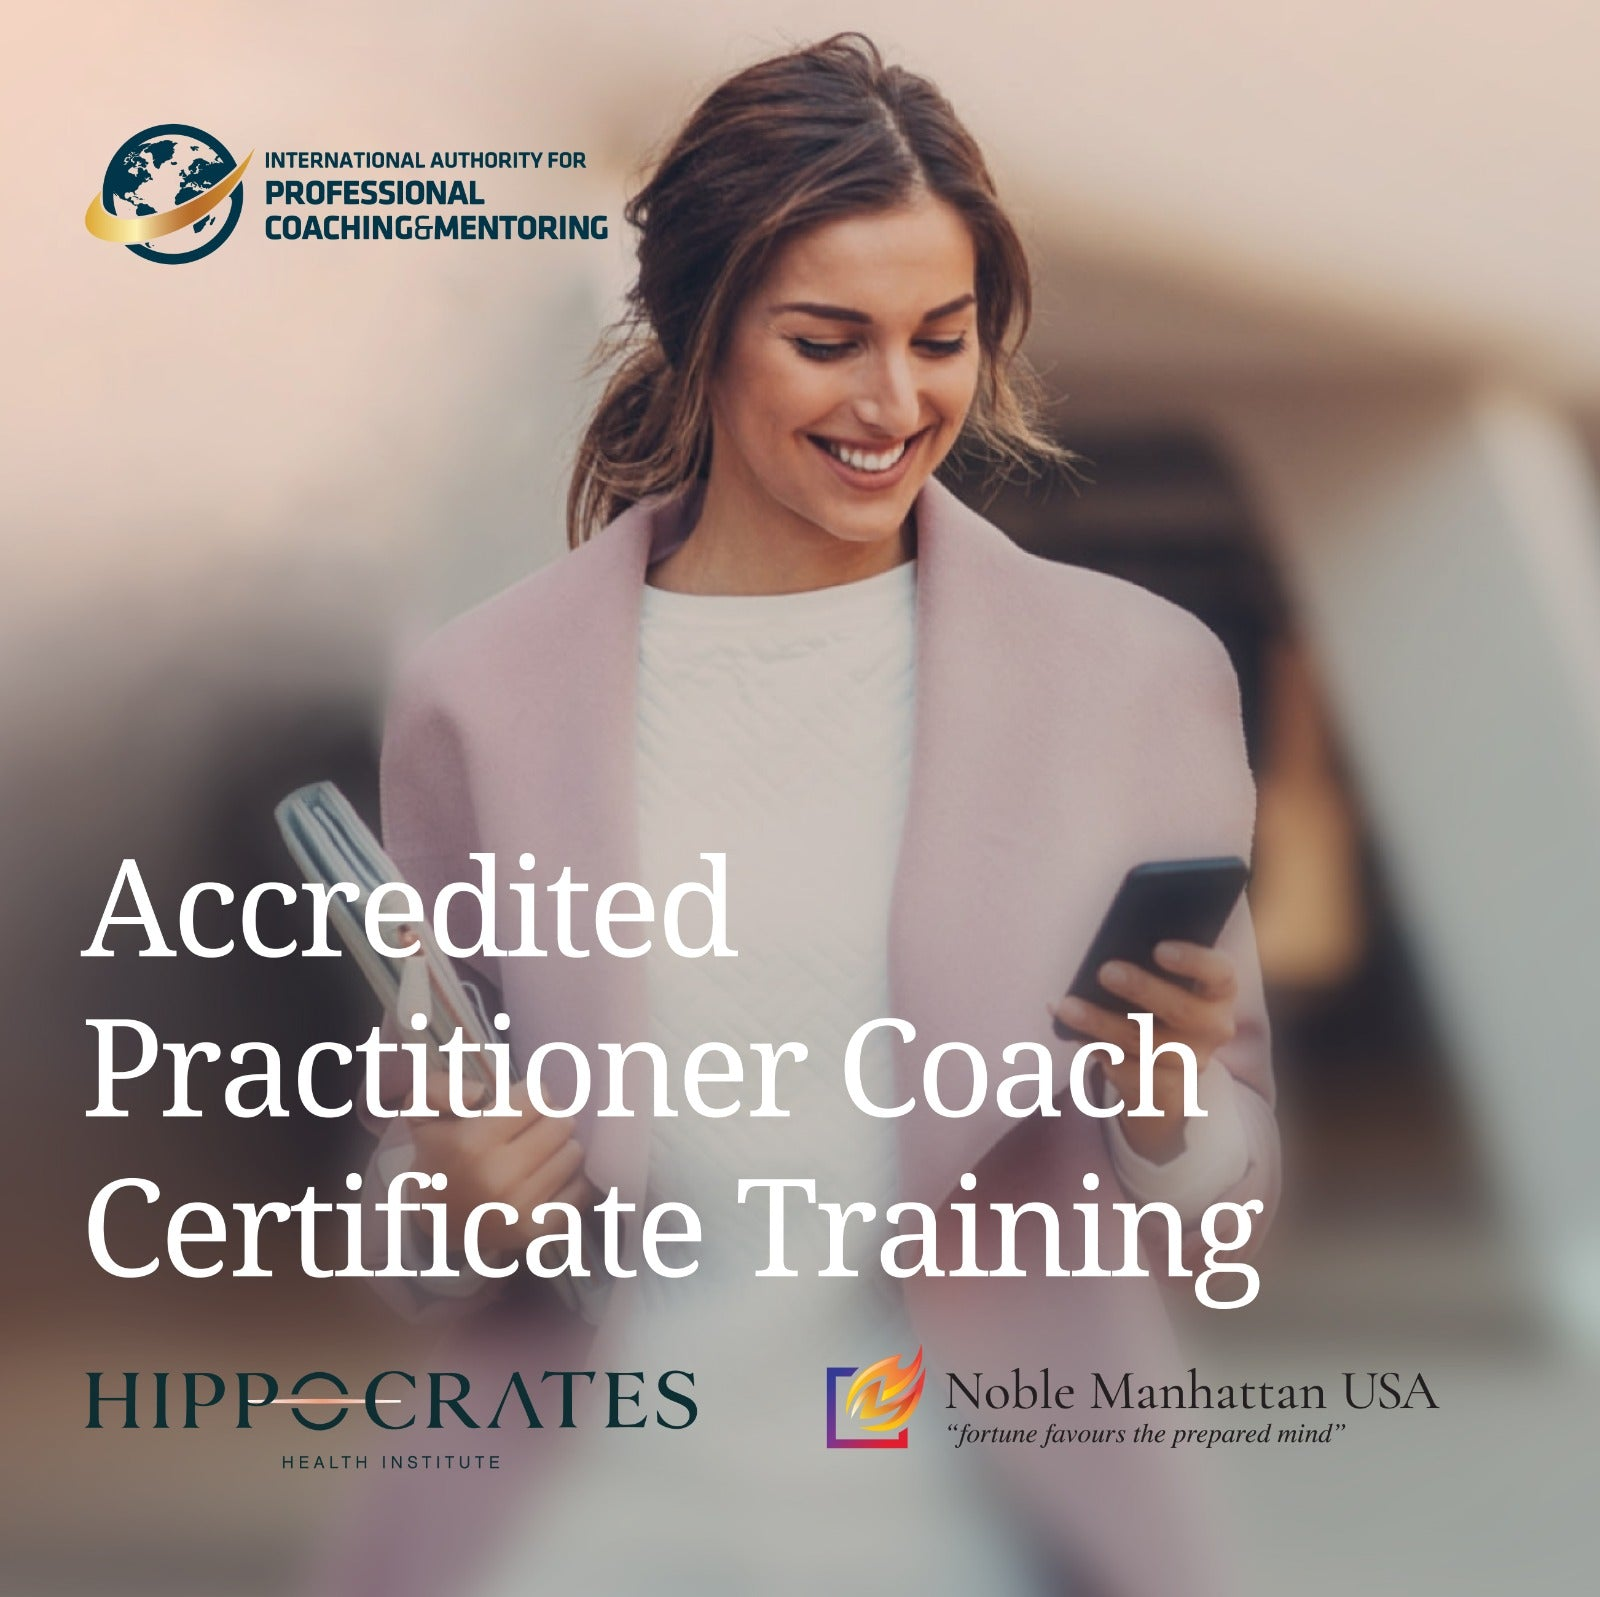 Practitioner Coach Certificate Training (2 payments)